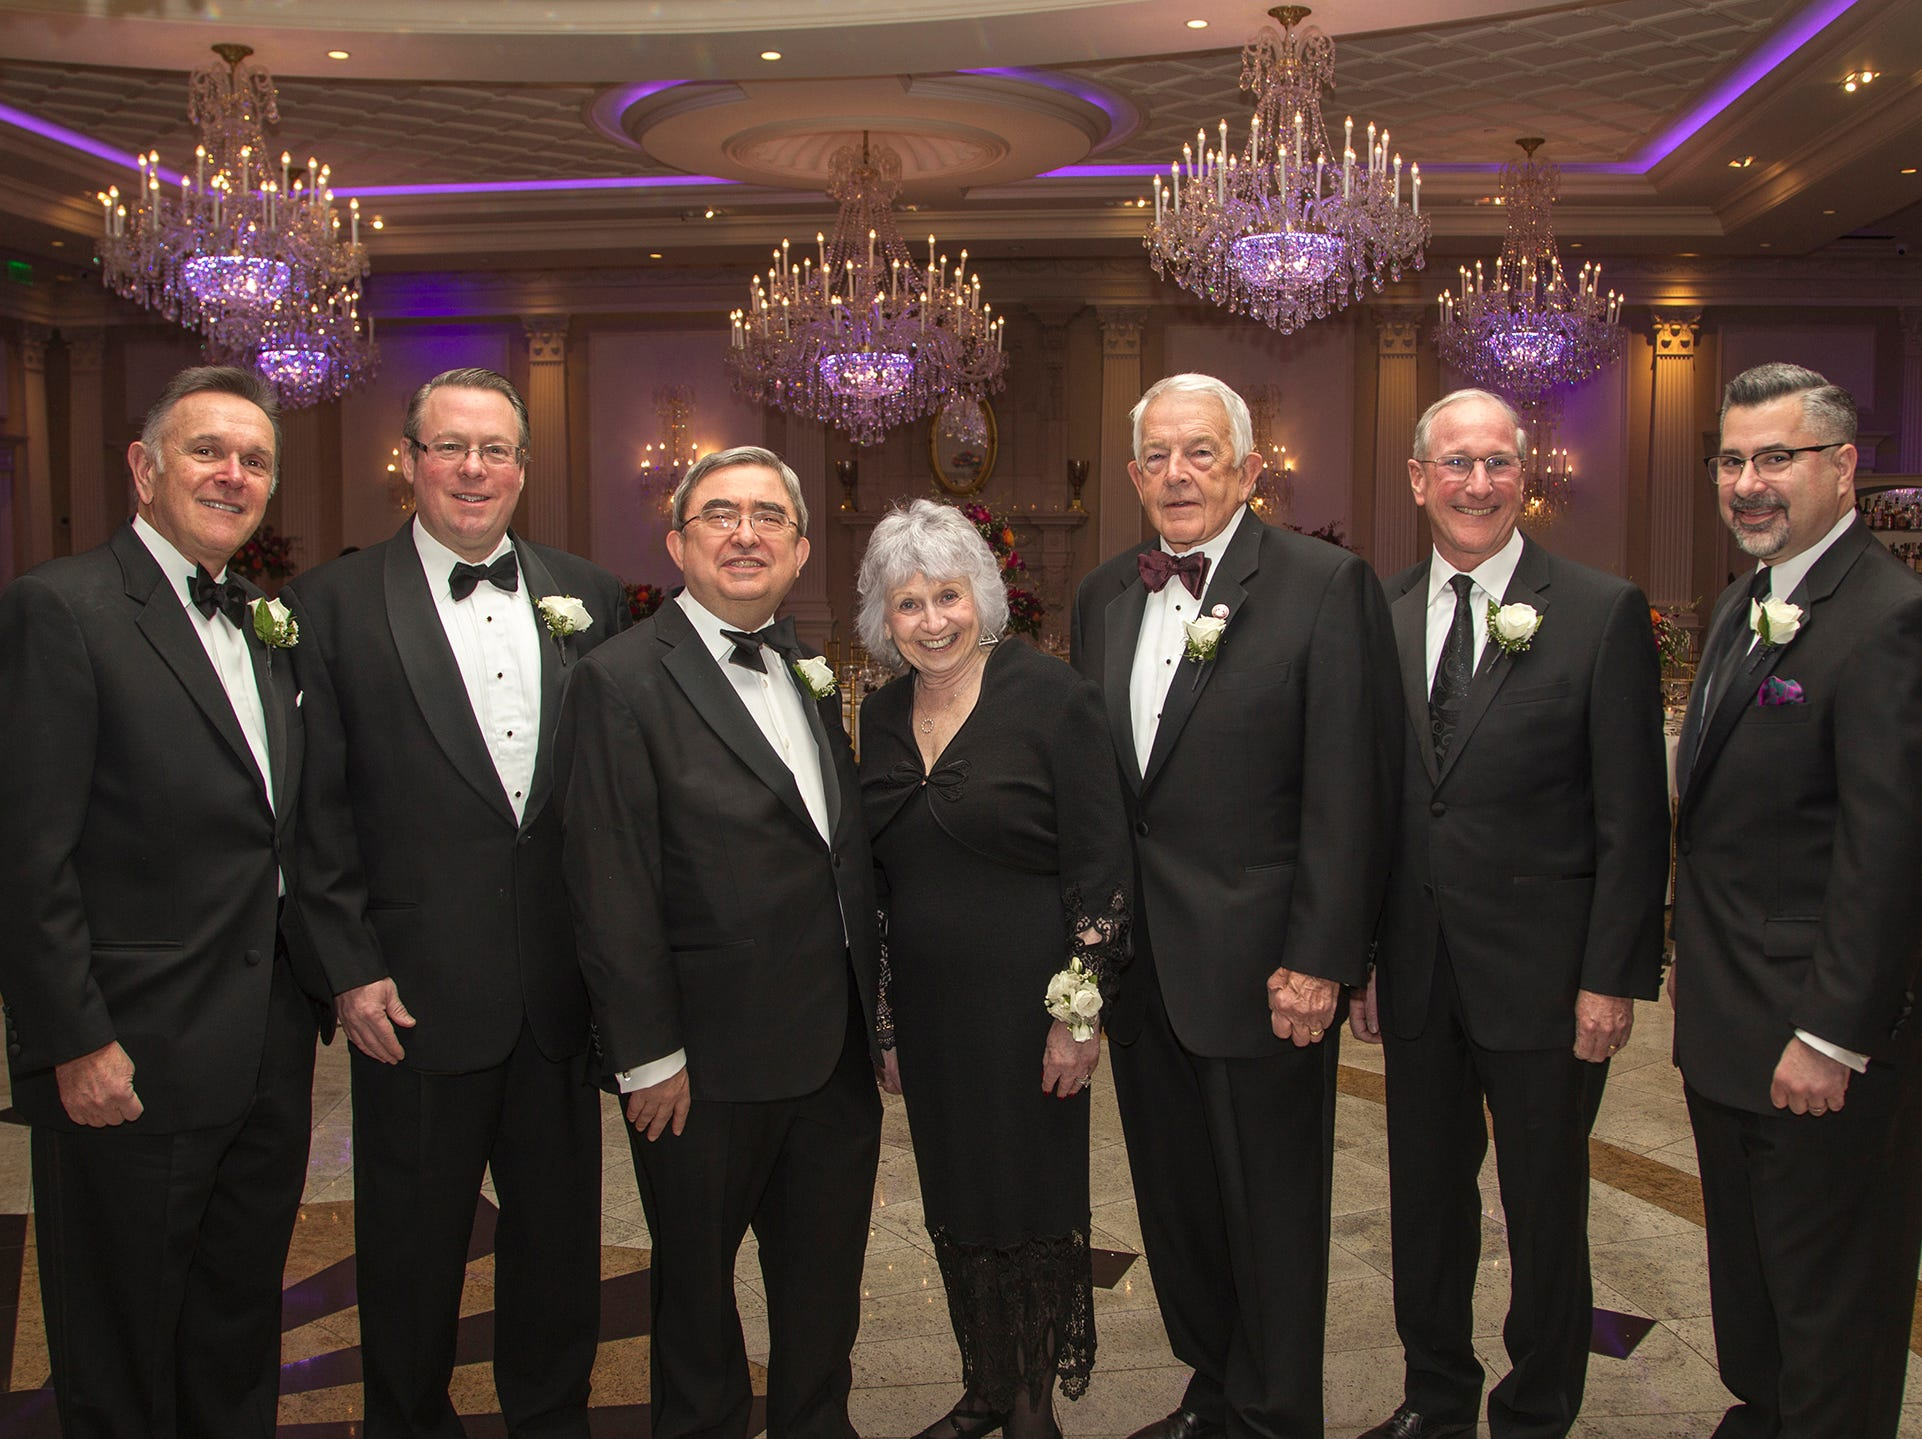 Ramapo Board of Trustees Lee Maas, Michael Hettesheimer, Dr.Peter Mercer, Marlene Caride, Ira Kaltman. Ramapo College held its 37th Annual Distinguished Citizens Dinner at Rockleigh Country Club. 03/02/2019